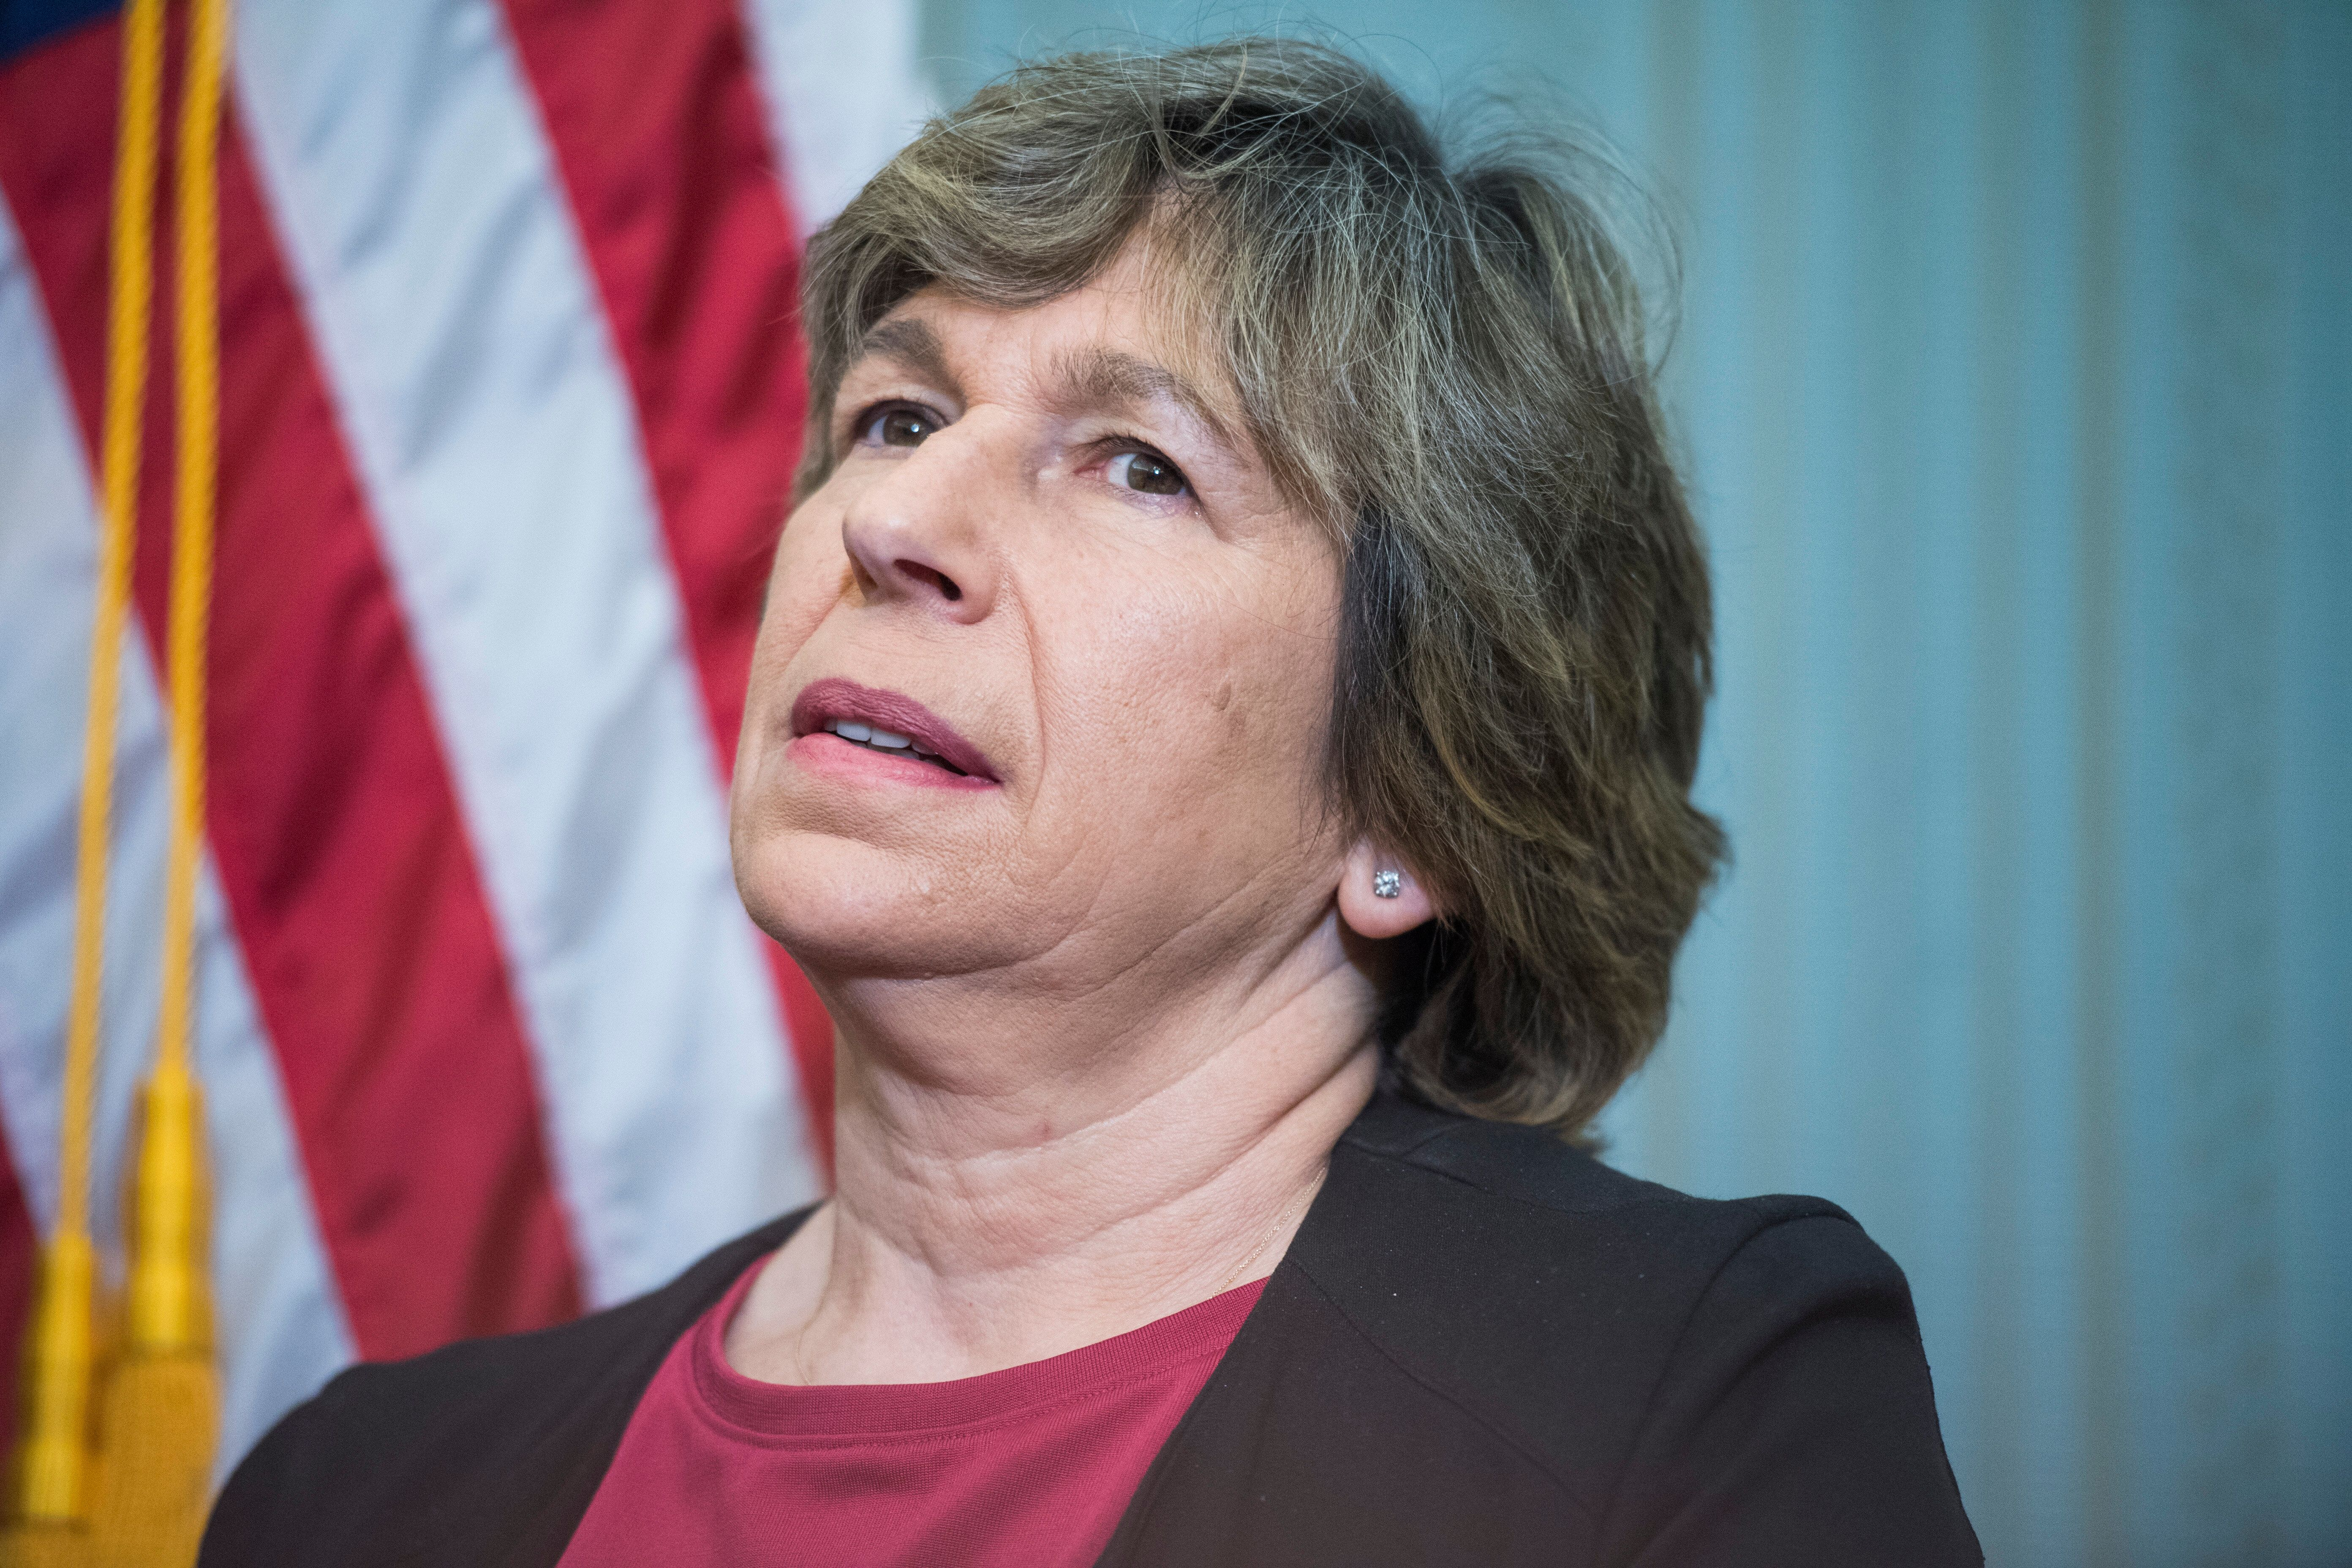 Randi Weingarten, president of the American Federation of Teachers, is a frequent guest on Fox News. But in this case, she be